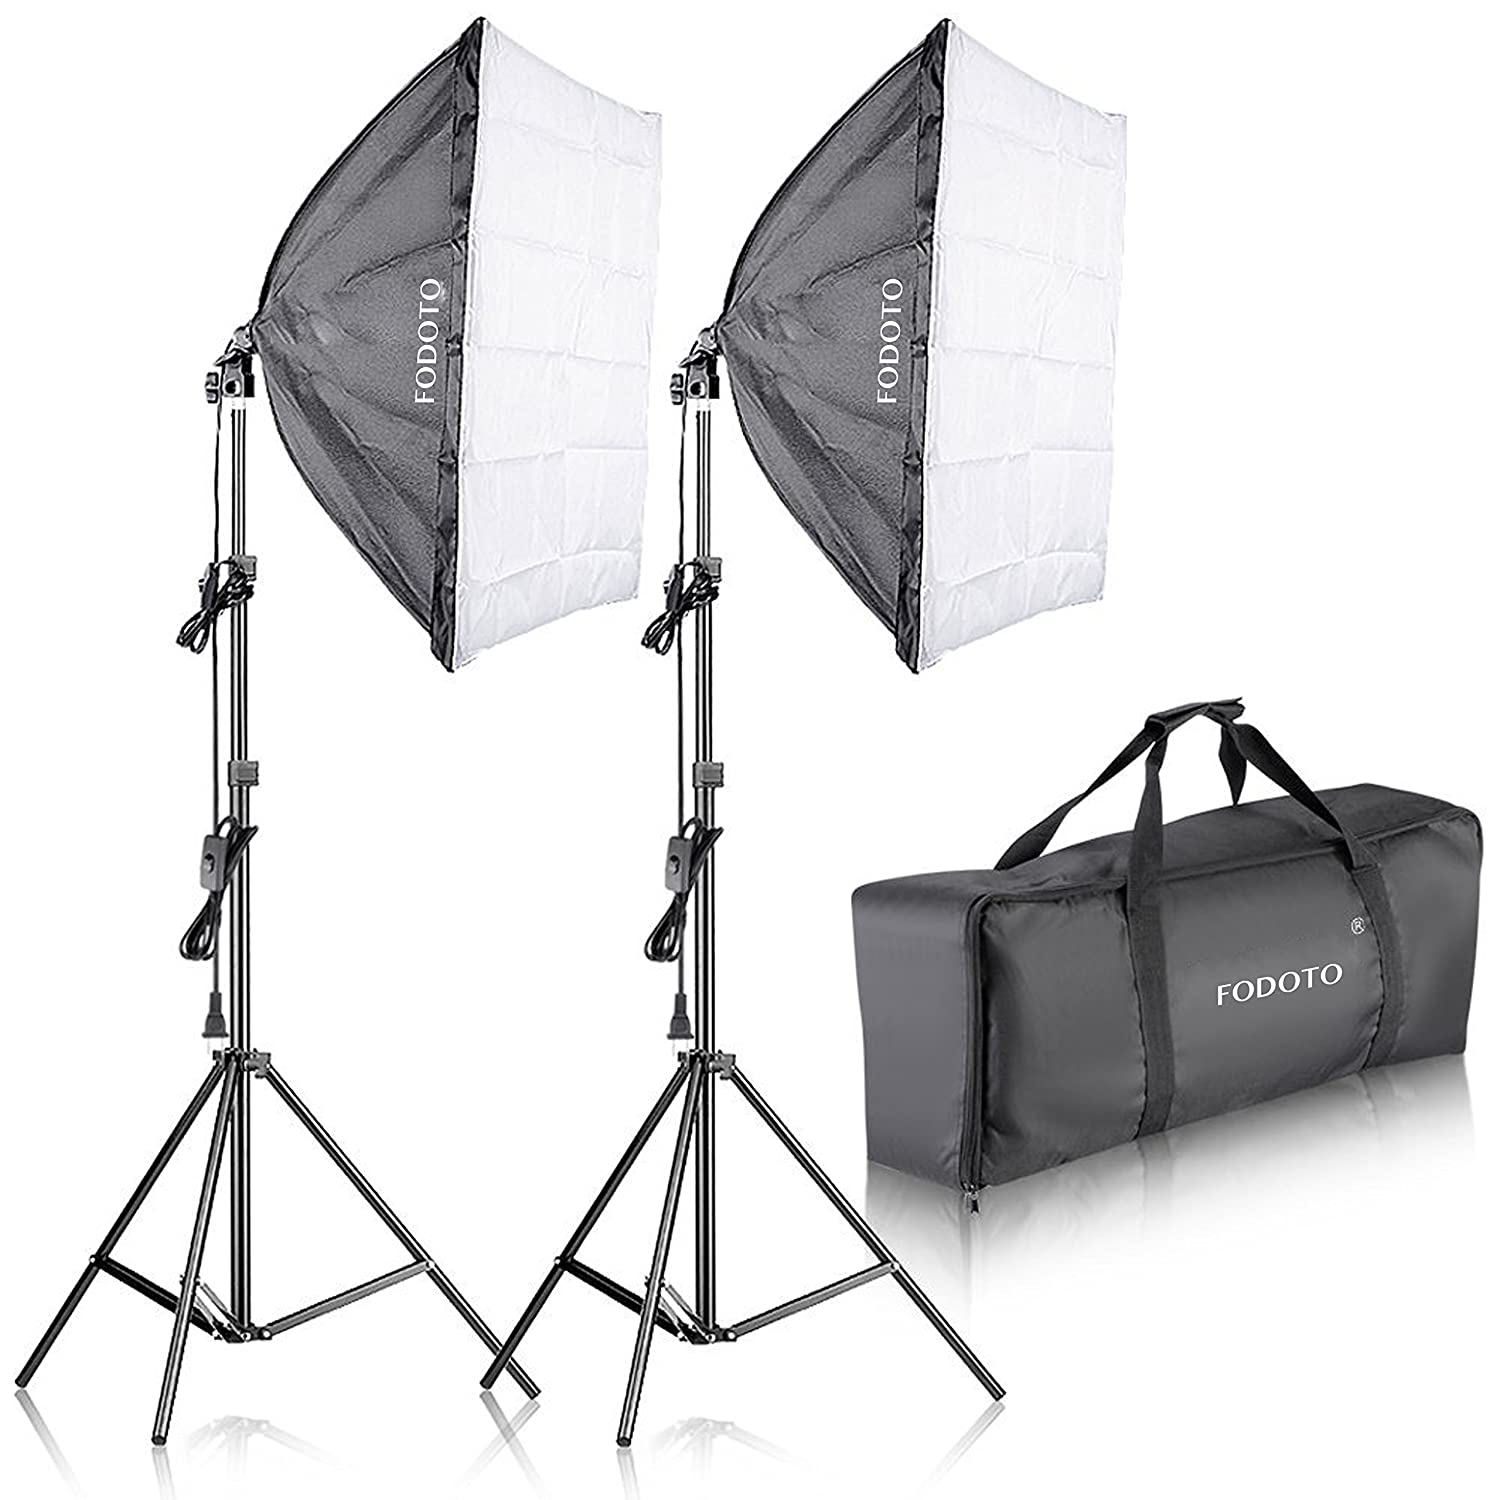 GTAPhotoStudio 900w Photo Video Studio Softbox Lighting Kit 5500k (Daylight) Stands & Bulbs Included FODOTO